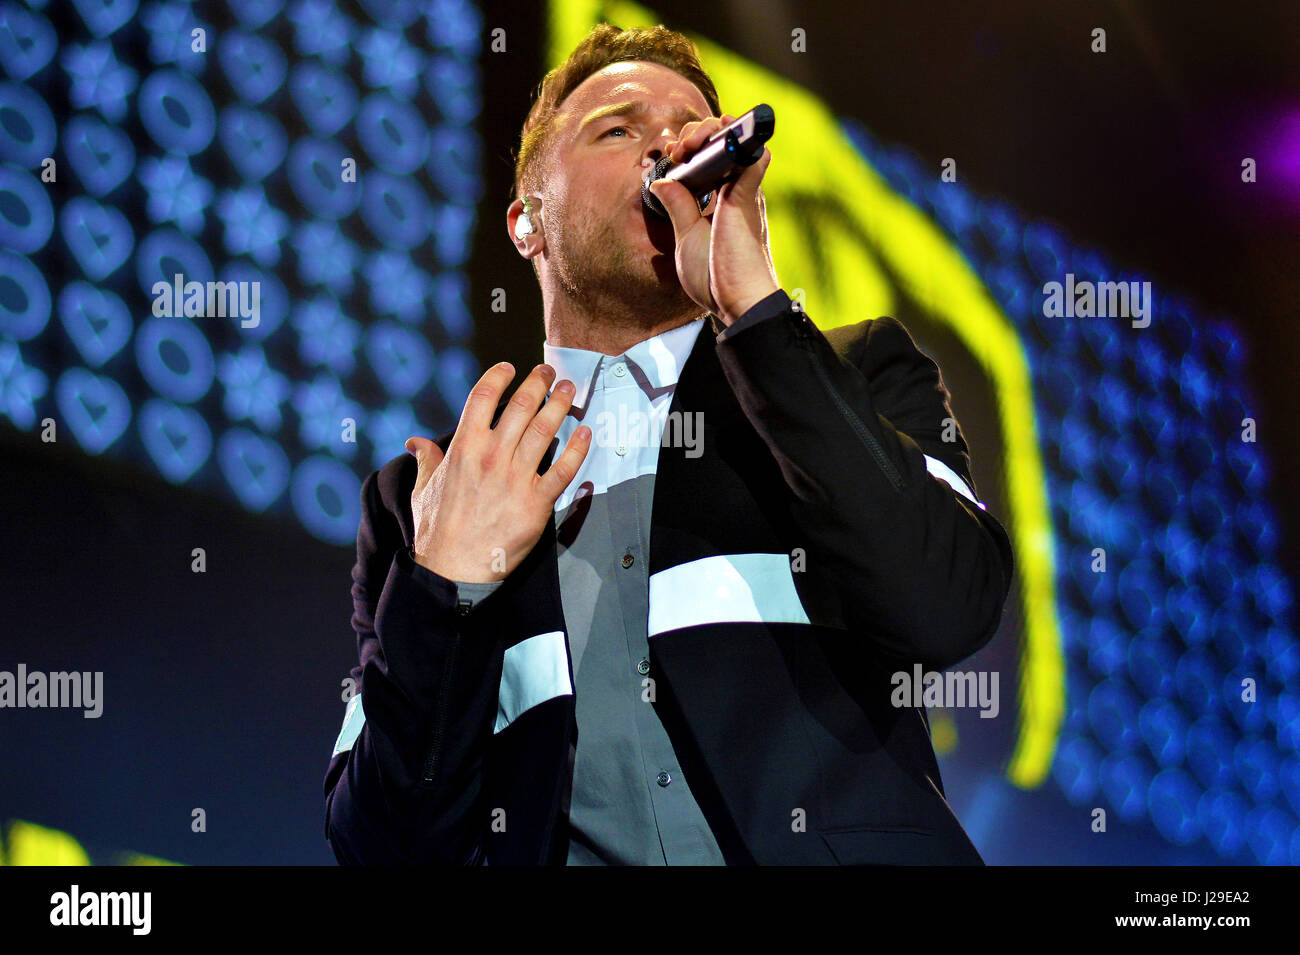 Newcastle, England, UK. Friday 6th May 2016 Olly Murs performing at the Metro Radio Arena, Credit: Rob Chambers - Stock Image